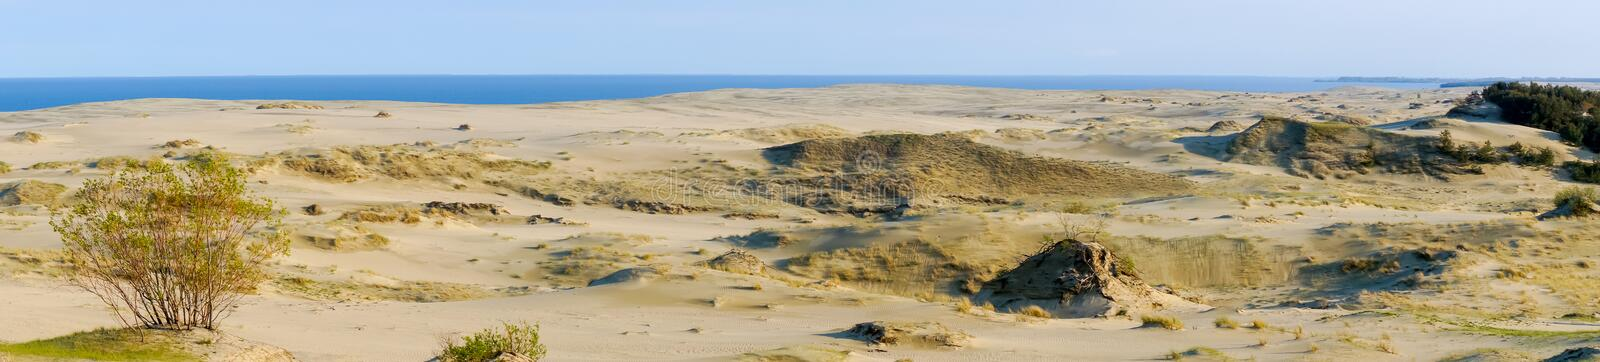 Curonian Spit. Dunes on the Curonian Spit royalty free stock photography